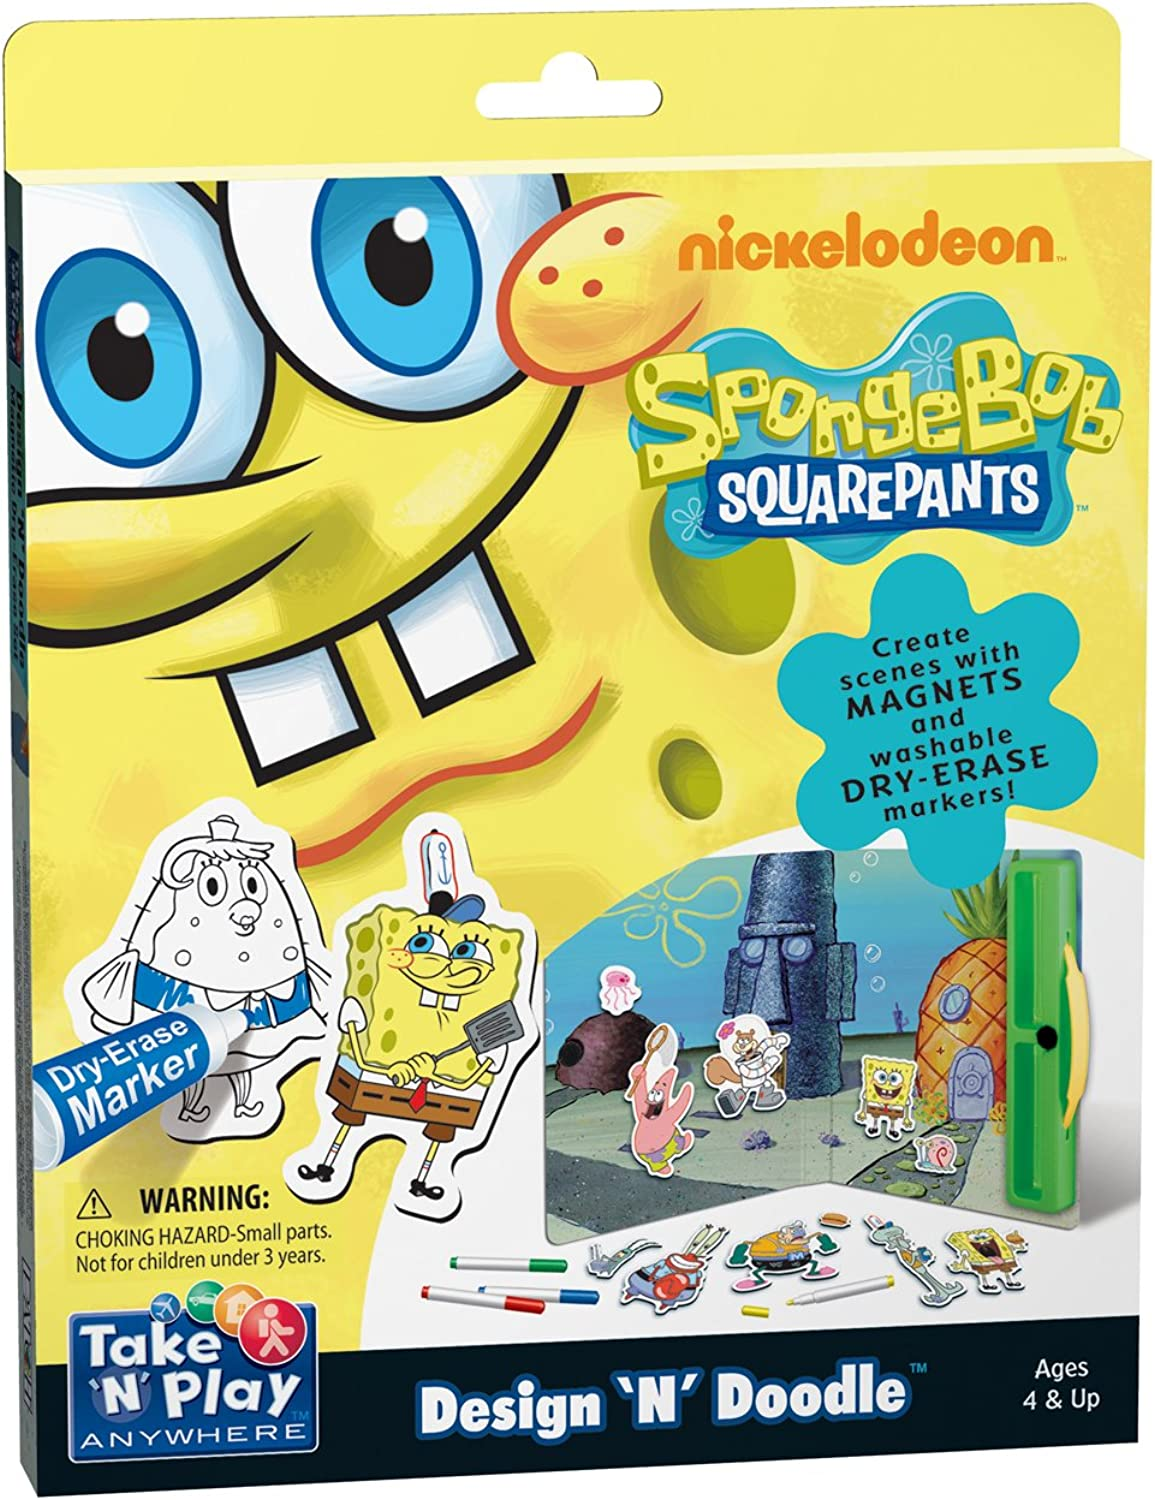 SpongeBob SquarePants Take N Play Anywhere Design 'N' Doodle Kit Patch Products 647